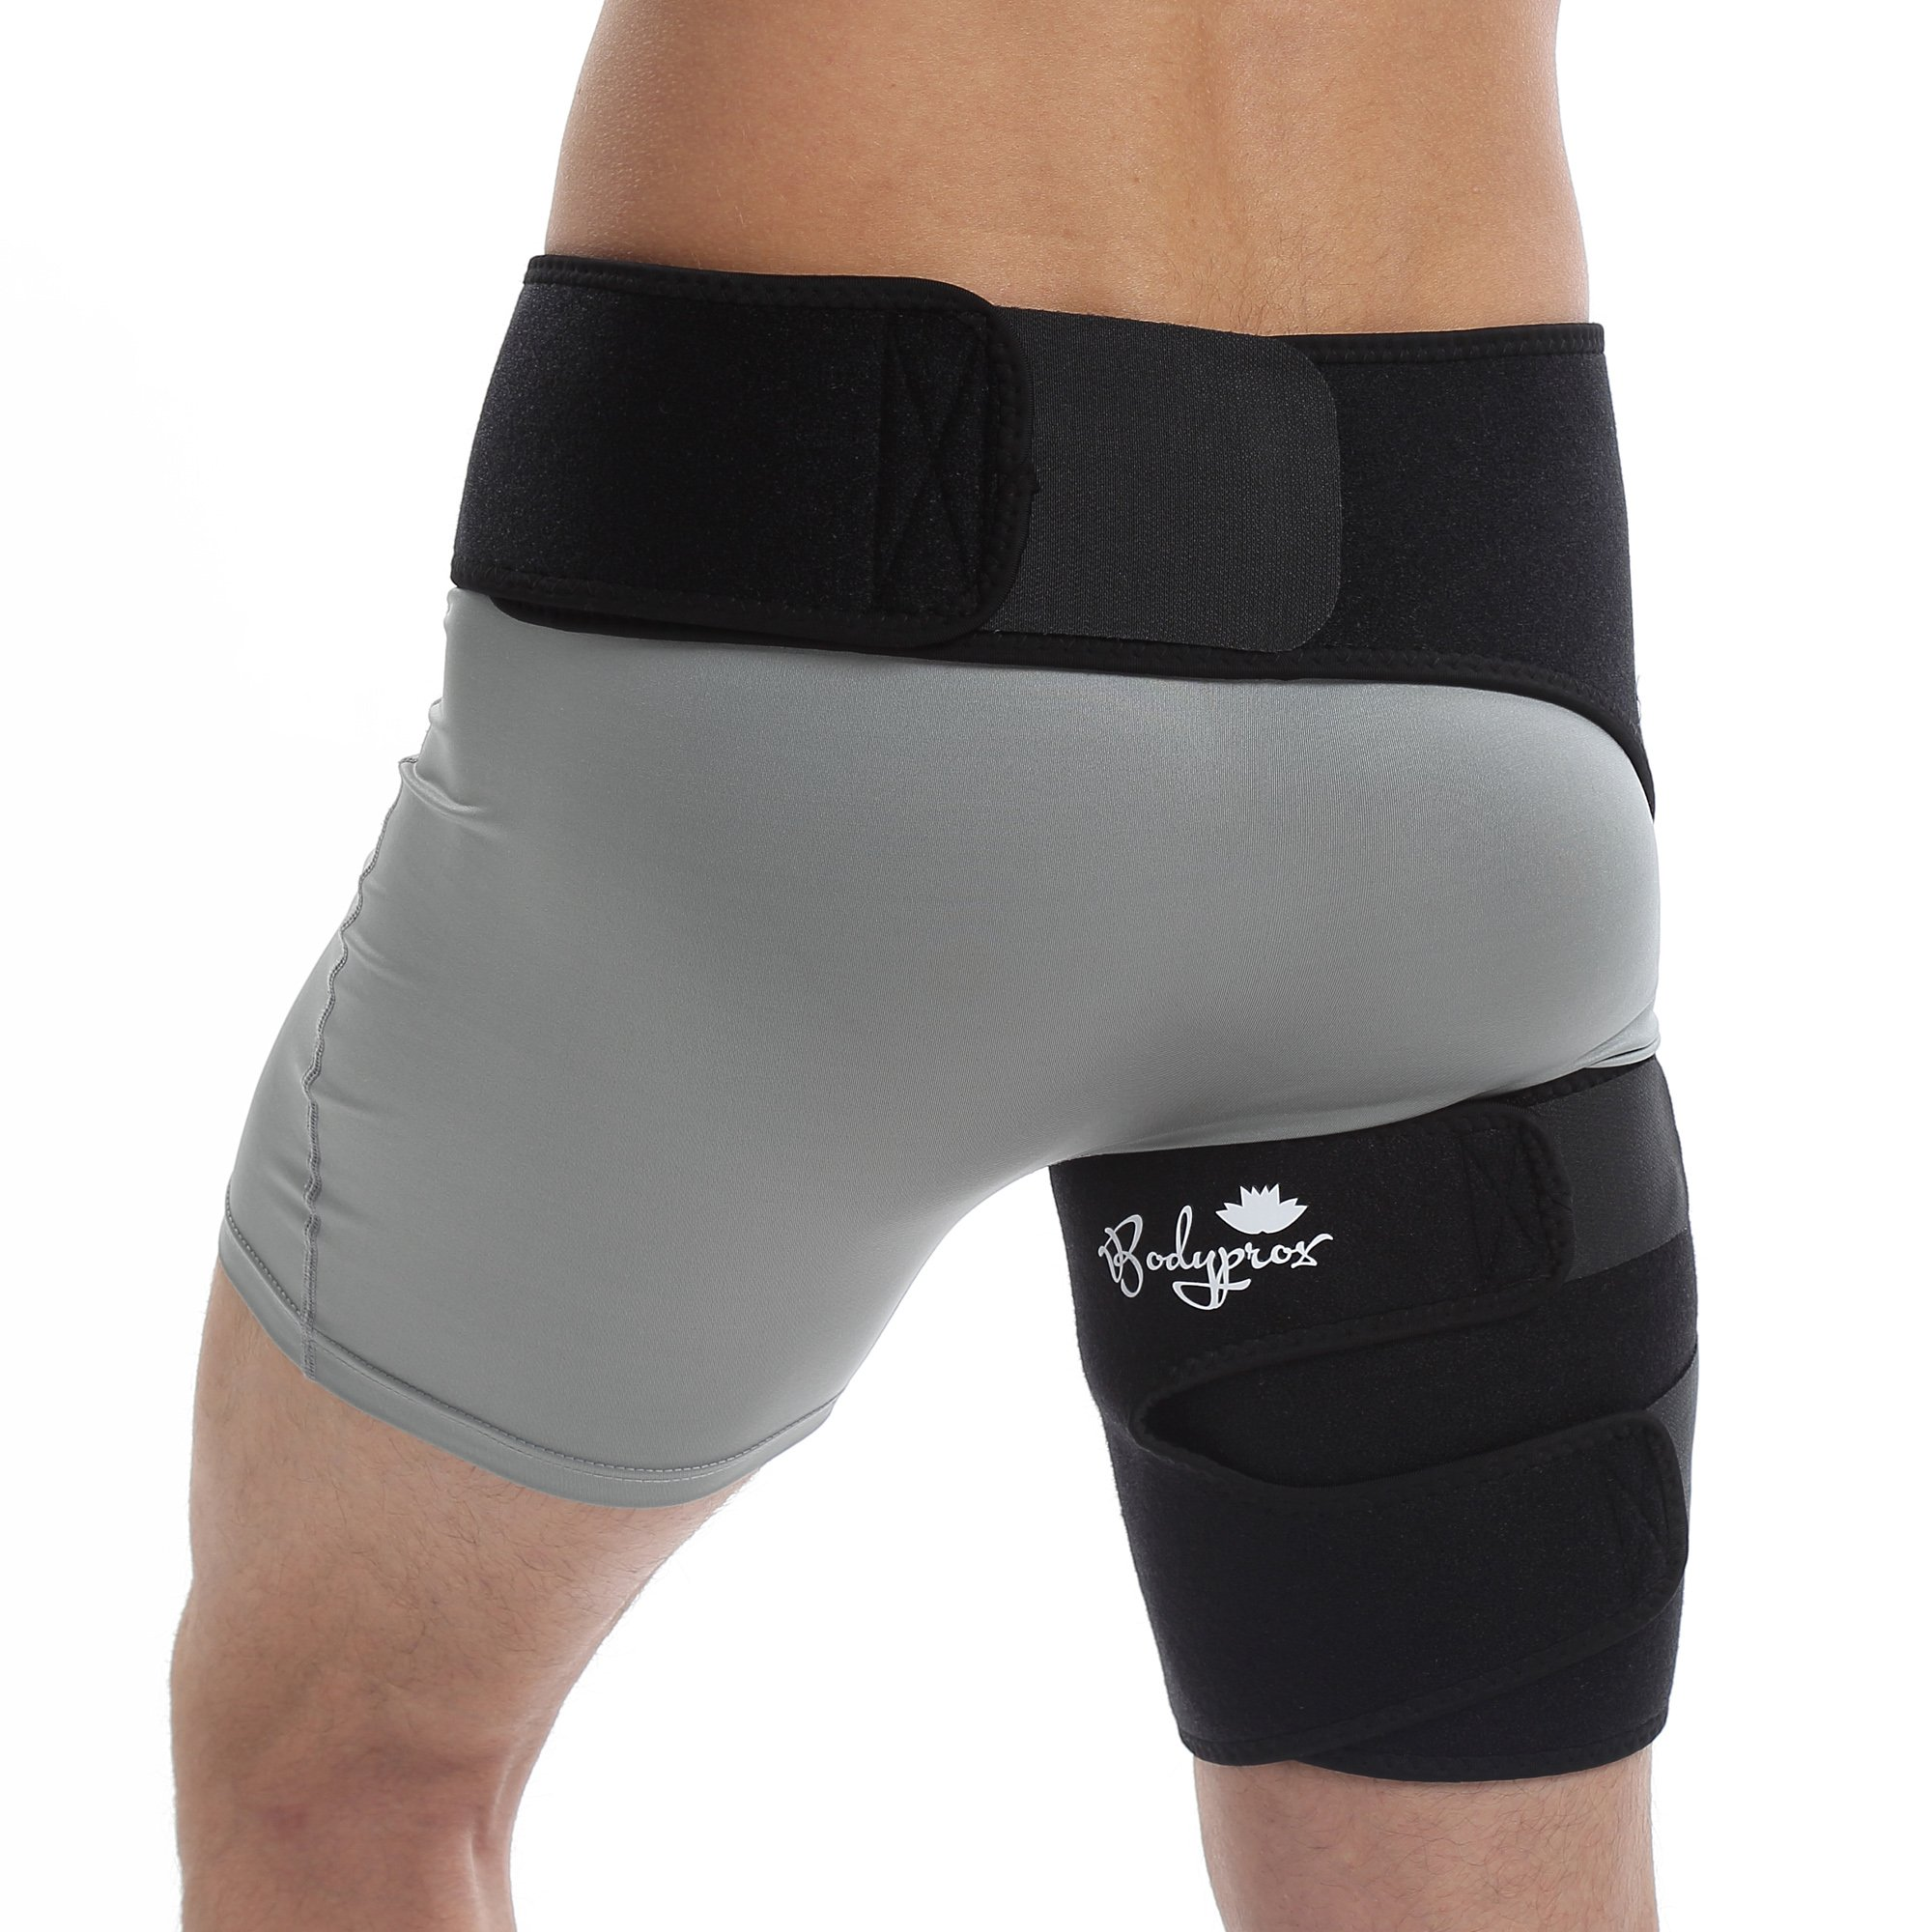 Groin Wrap, Adjustable Support for Hip, Groin, Hamstring, Thigh, and Sciatic Nerve Pain Relief by Bodyprox